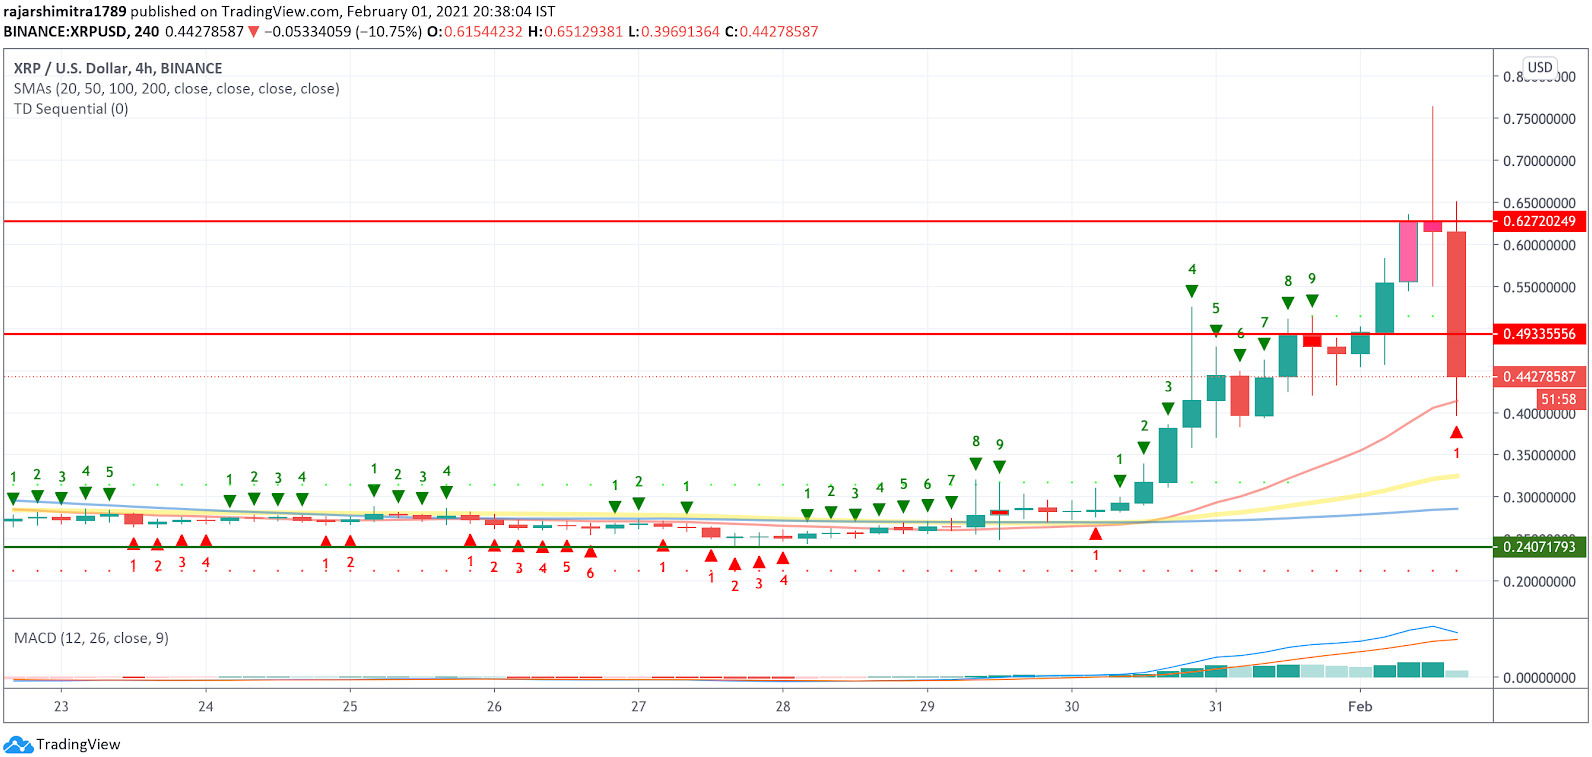 xrp/usd daily chart 020221